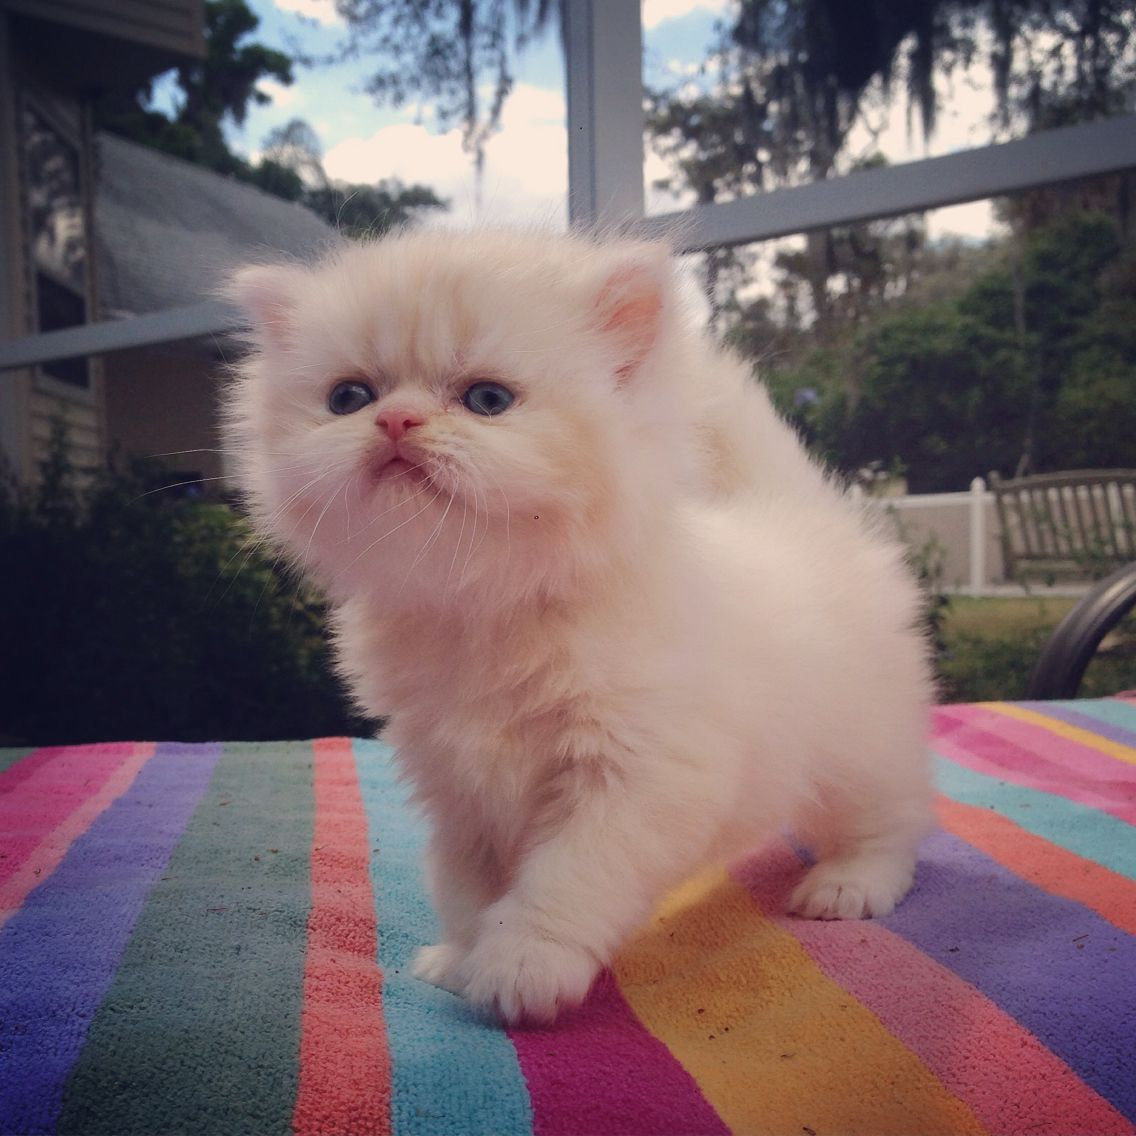 For Sale Kismet Kittens Cream Persian Kitten With Green Eyes Male Ready To Go 3 29 15 To Res Persian Cat Doll Face Persian Kittens Persian Kittens For Sale